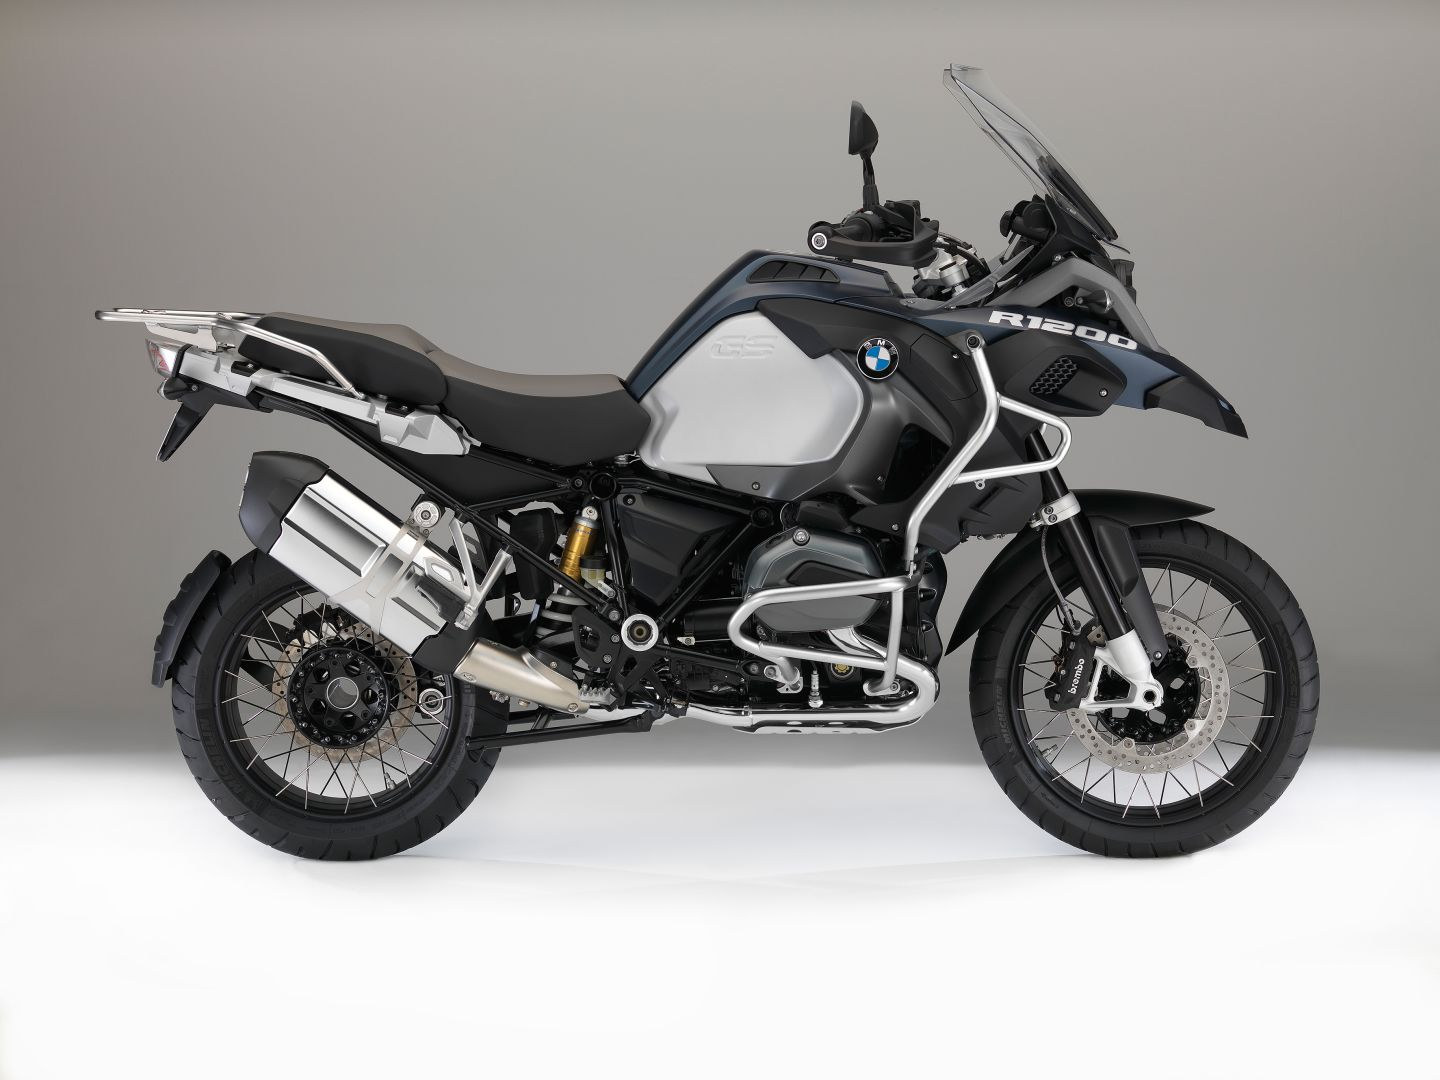 bmw motorcycles get upgraded colors and new features for. Black Bedroom Furniture Sets. Home Design Ideas